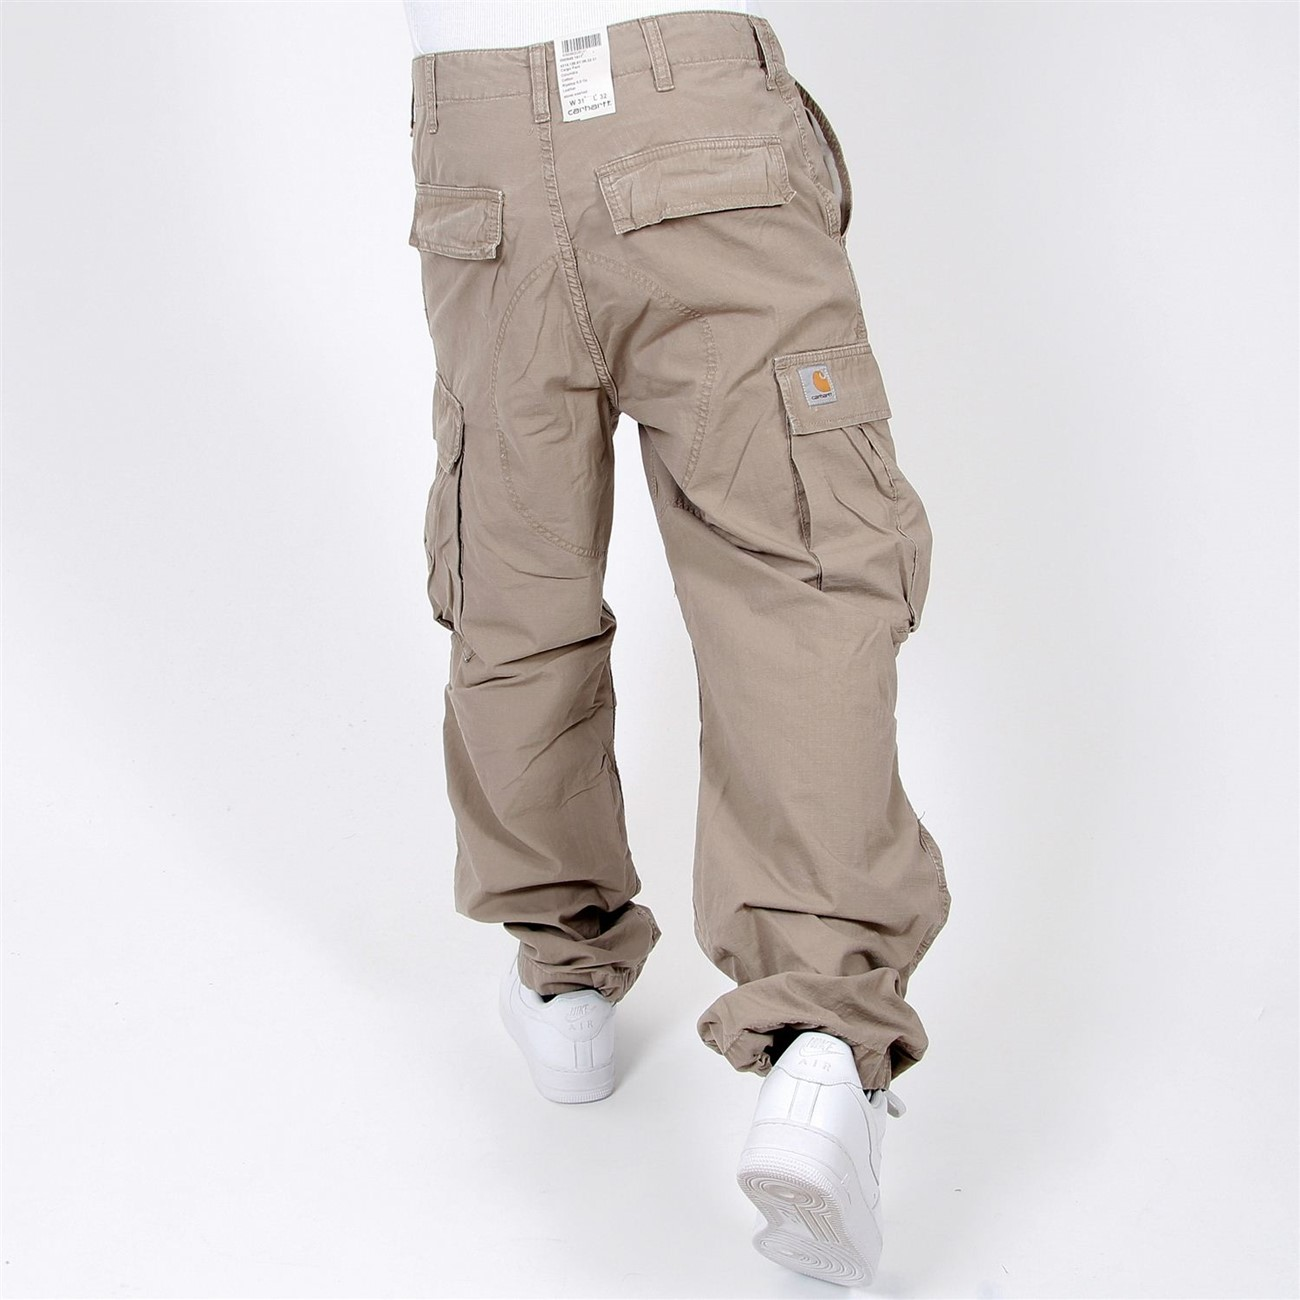 904275a21dd carhartt bukser cargo - https://ddstatic.dk/images/products/ ...